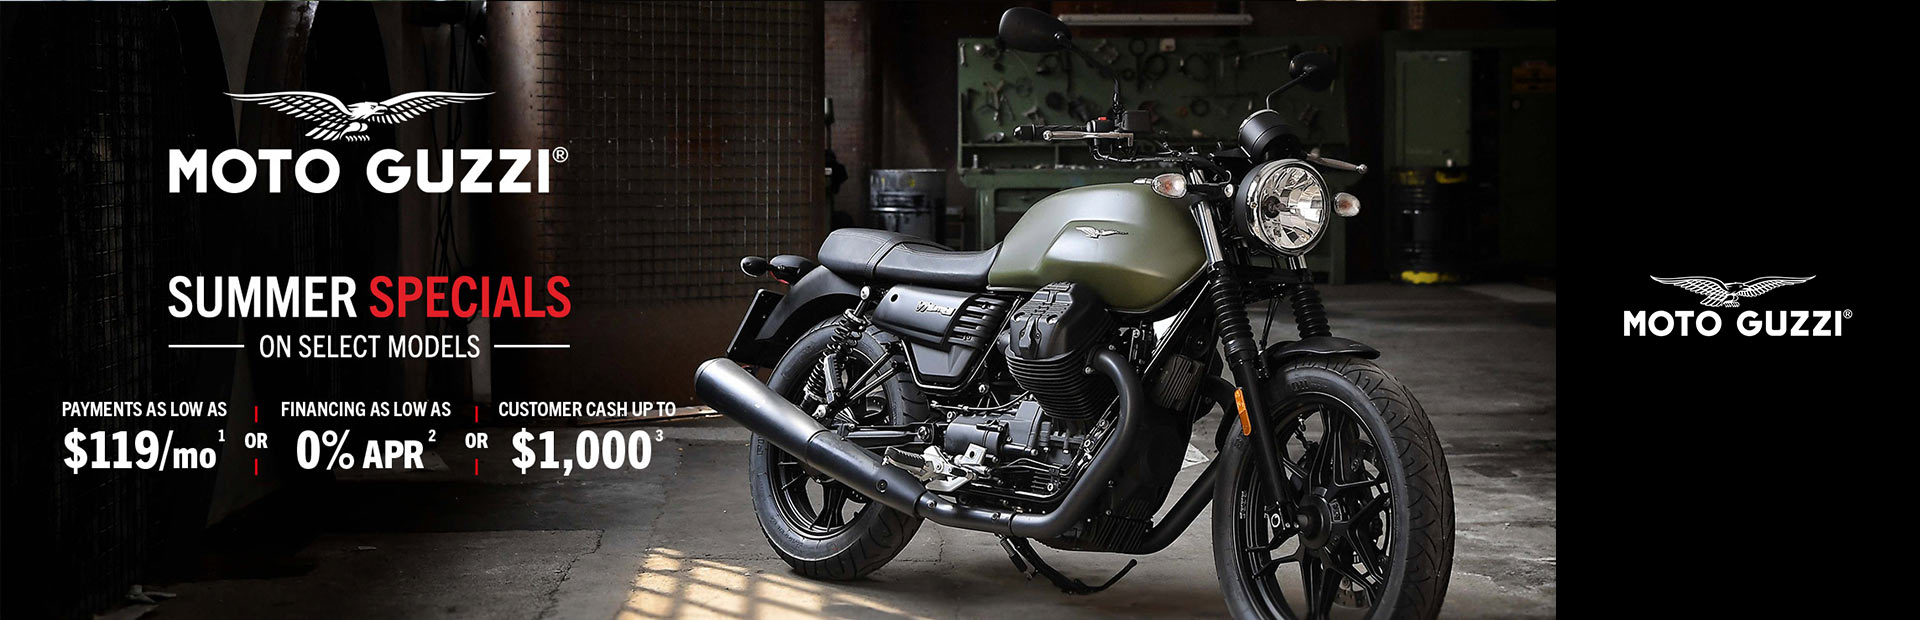 Moto Guzzi: Summer Specials